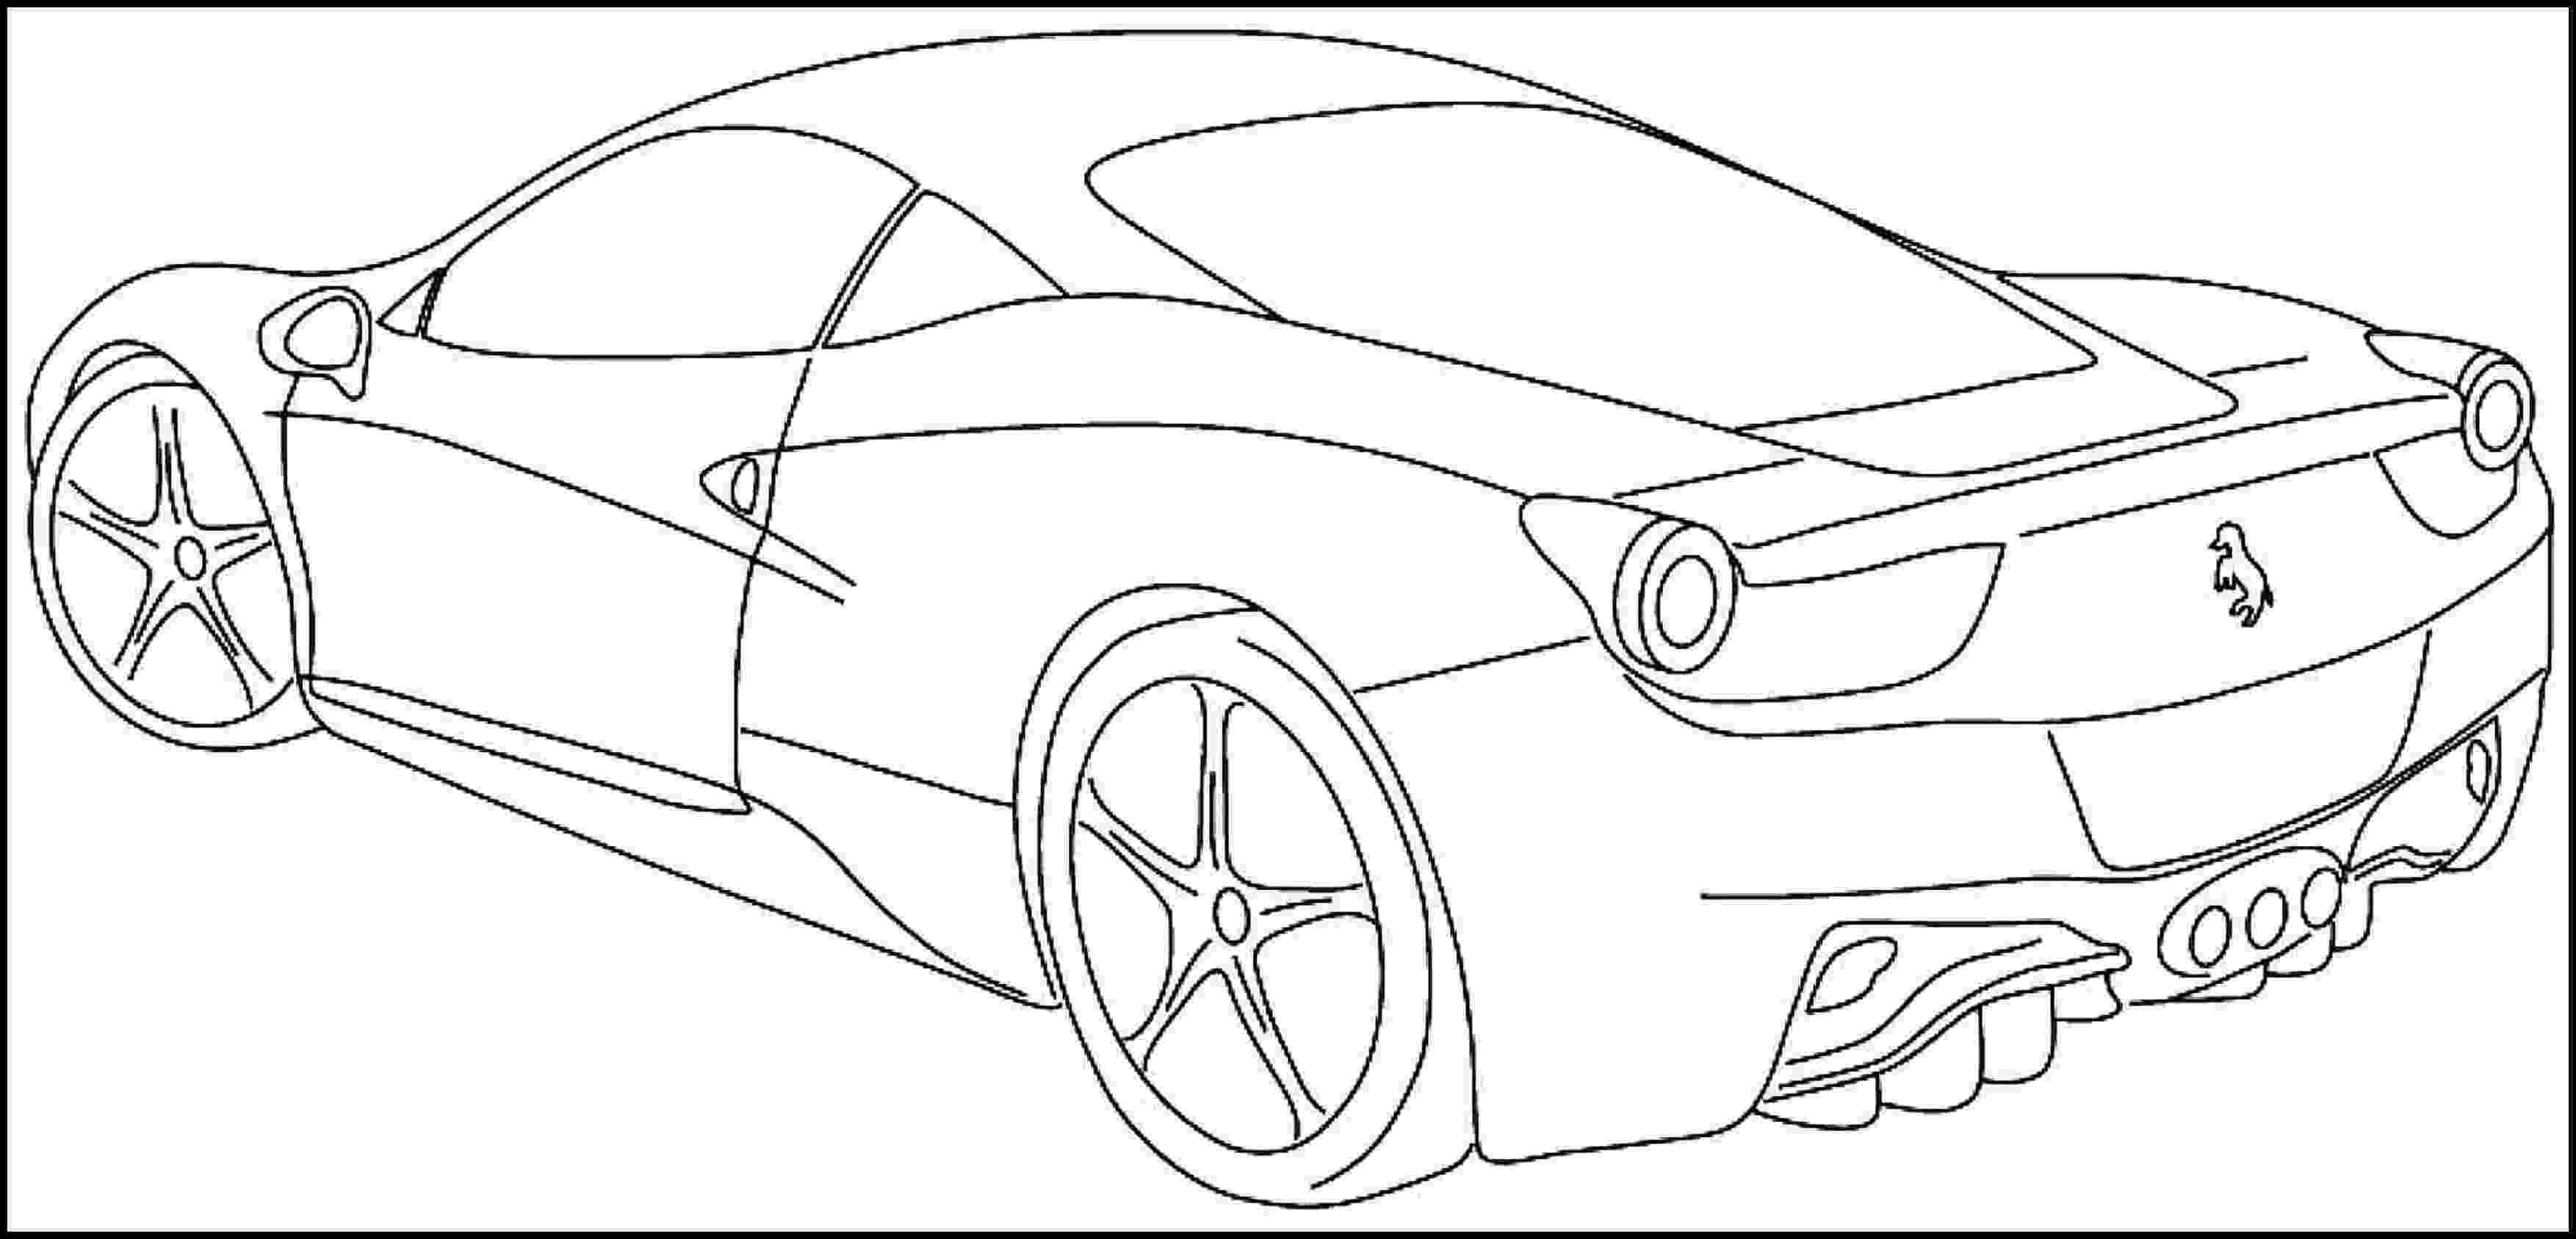 printable coloring pages sports cars printable sports car coloring pages for kids teens sports printable cars coloring pages